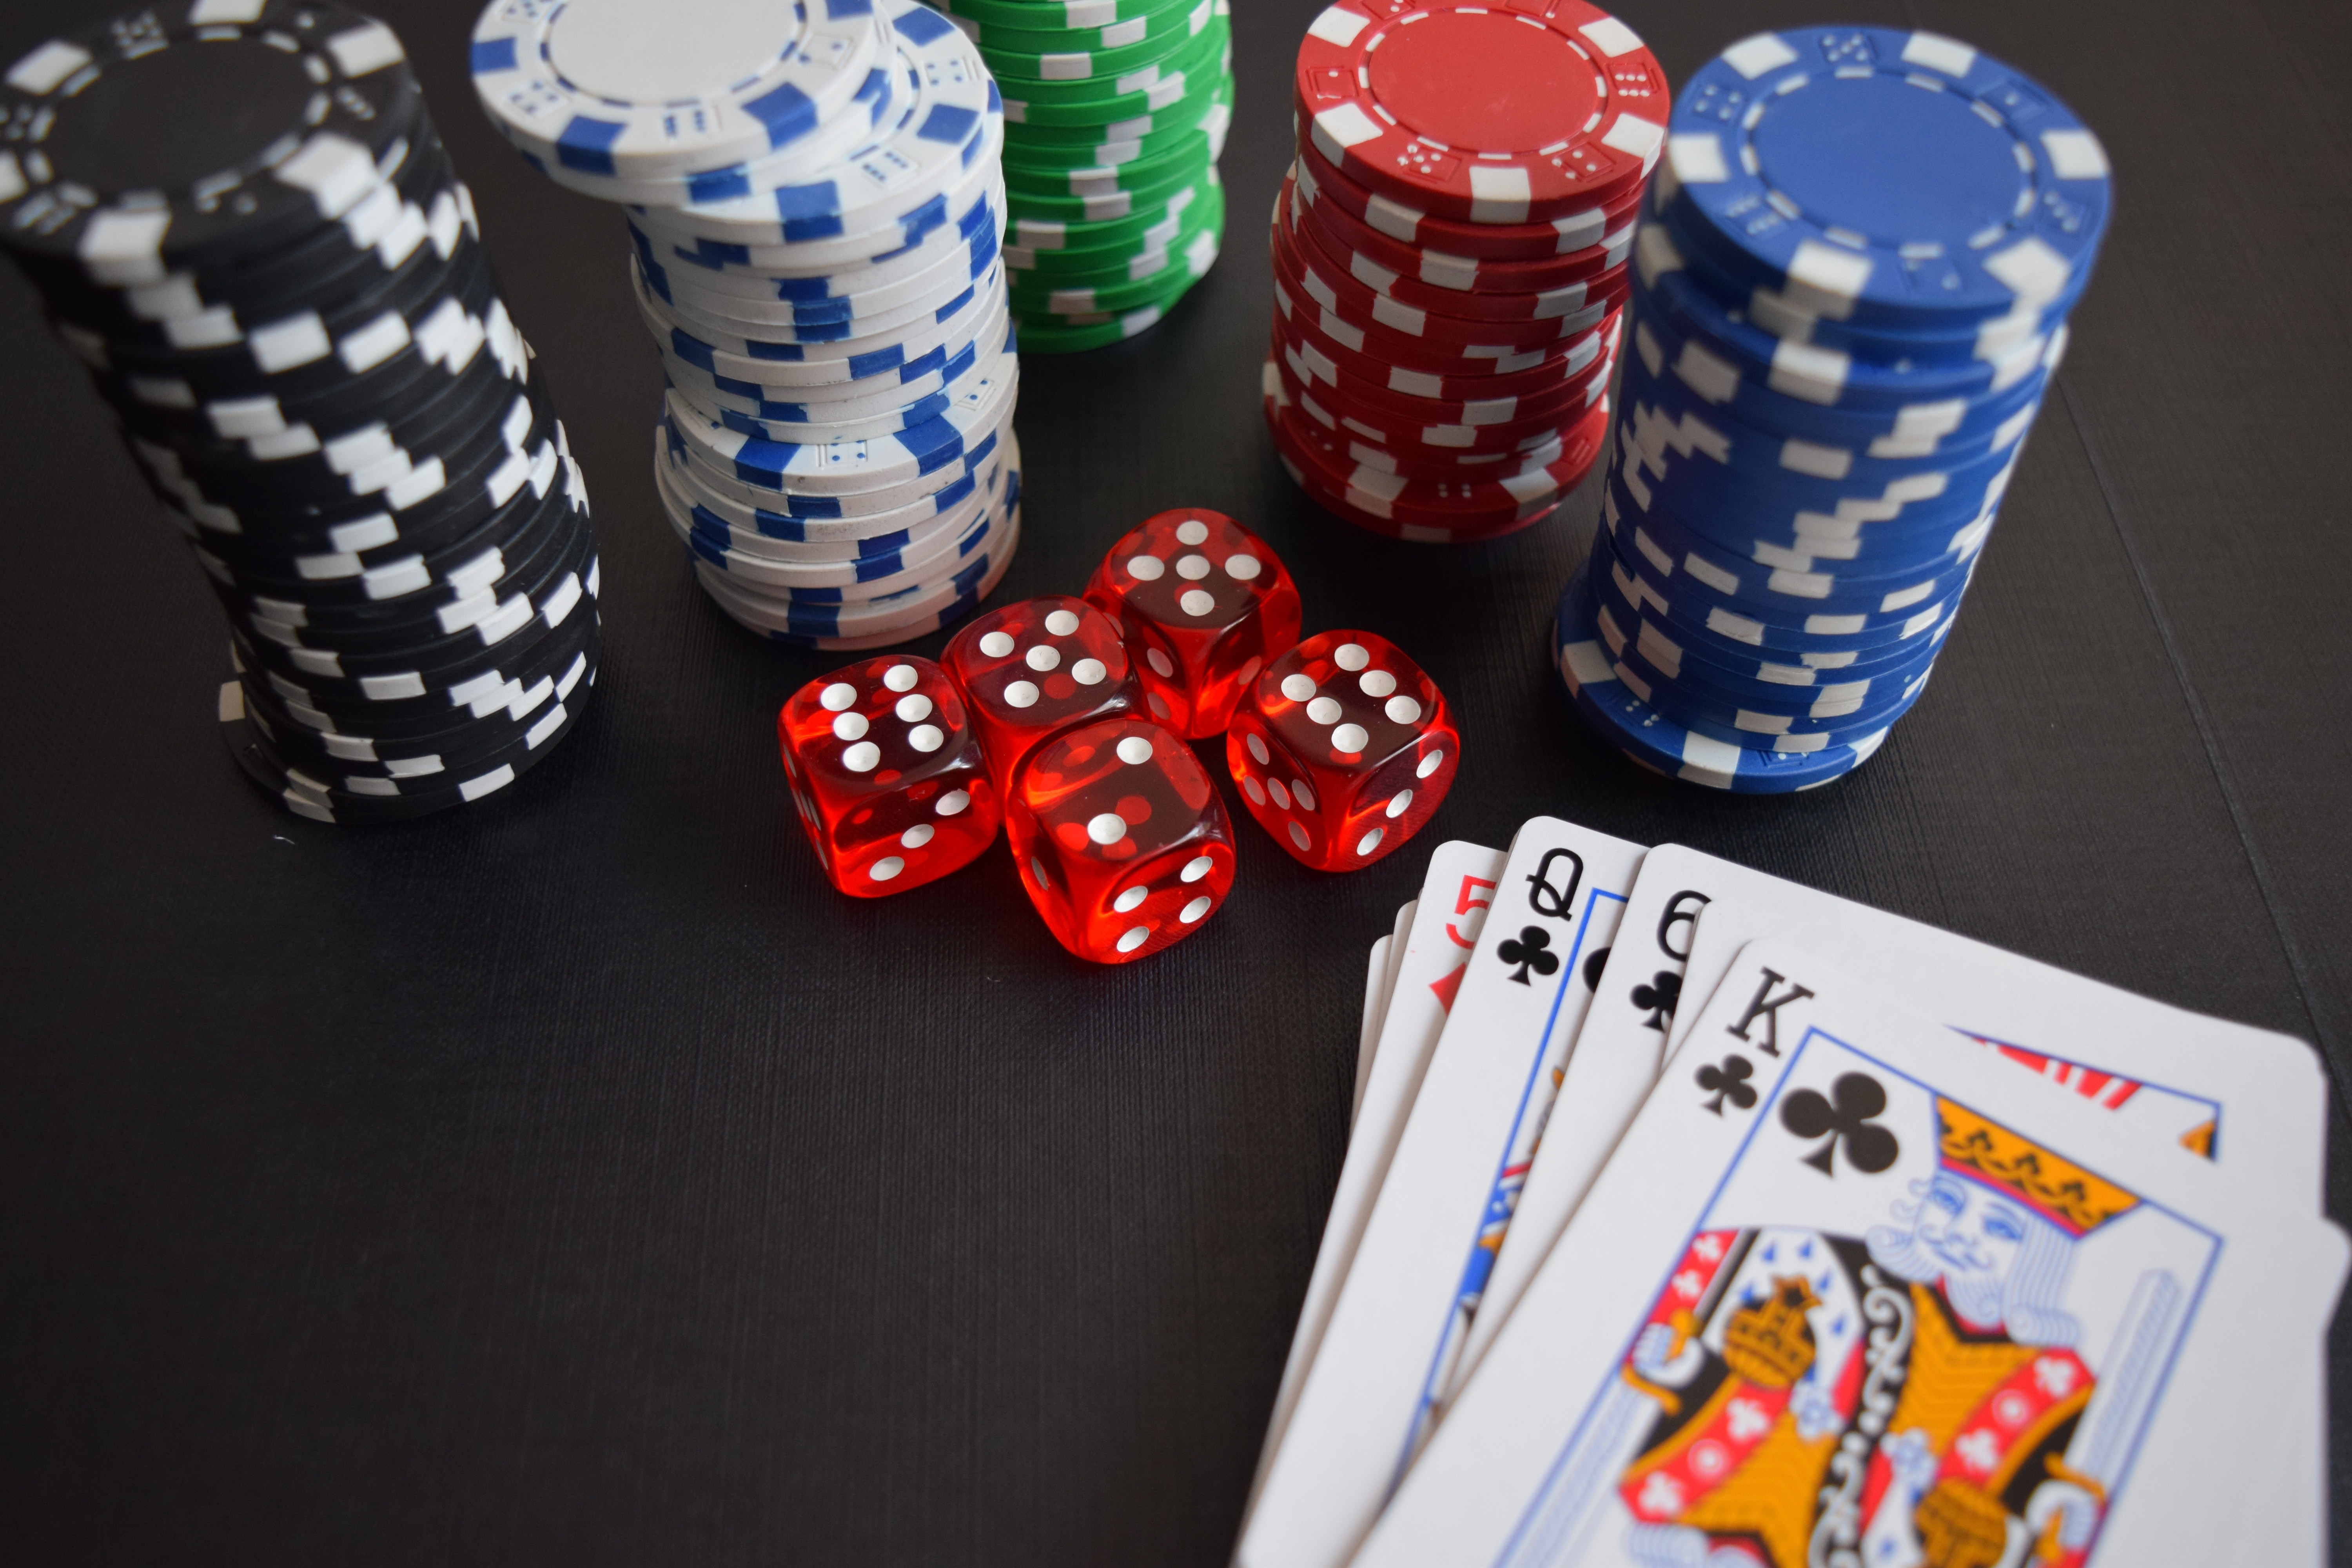 cards-casino-dice-chips